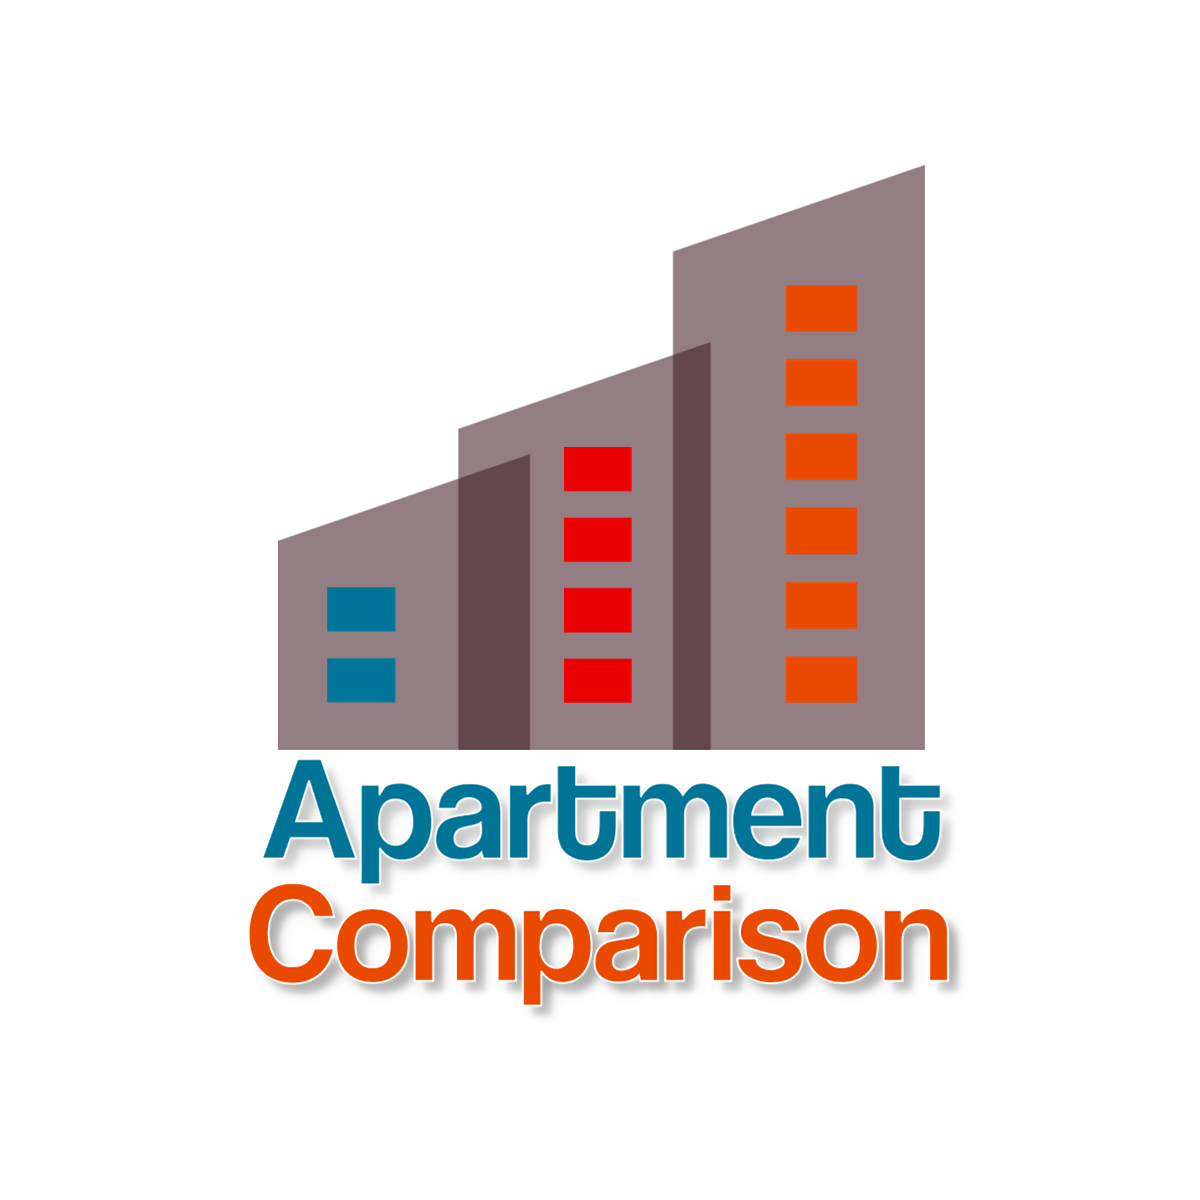 Excel Spreadsheets Help Download The Apartment Comparison